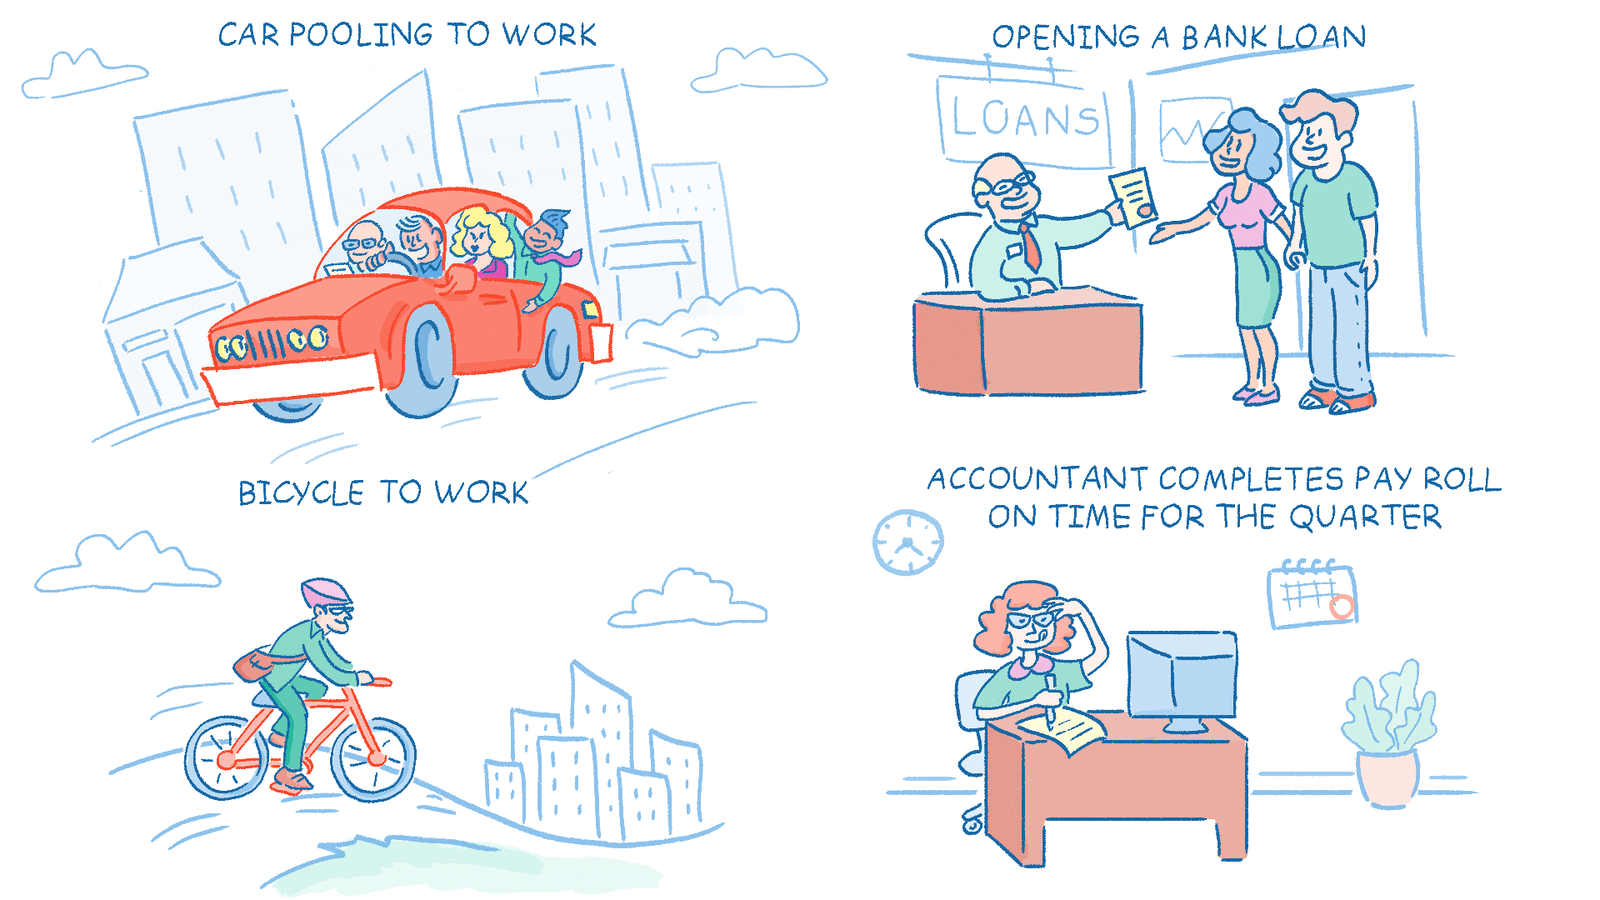 Incentives illustration with biking to work, carpooling to work, or closing a bank loan as examples.